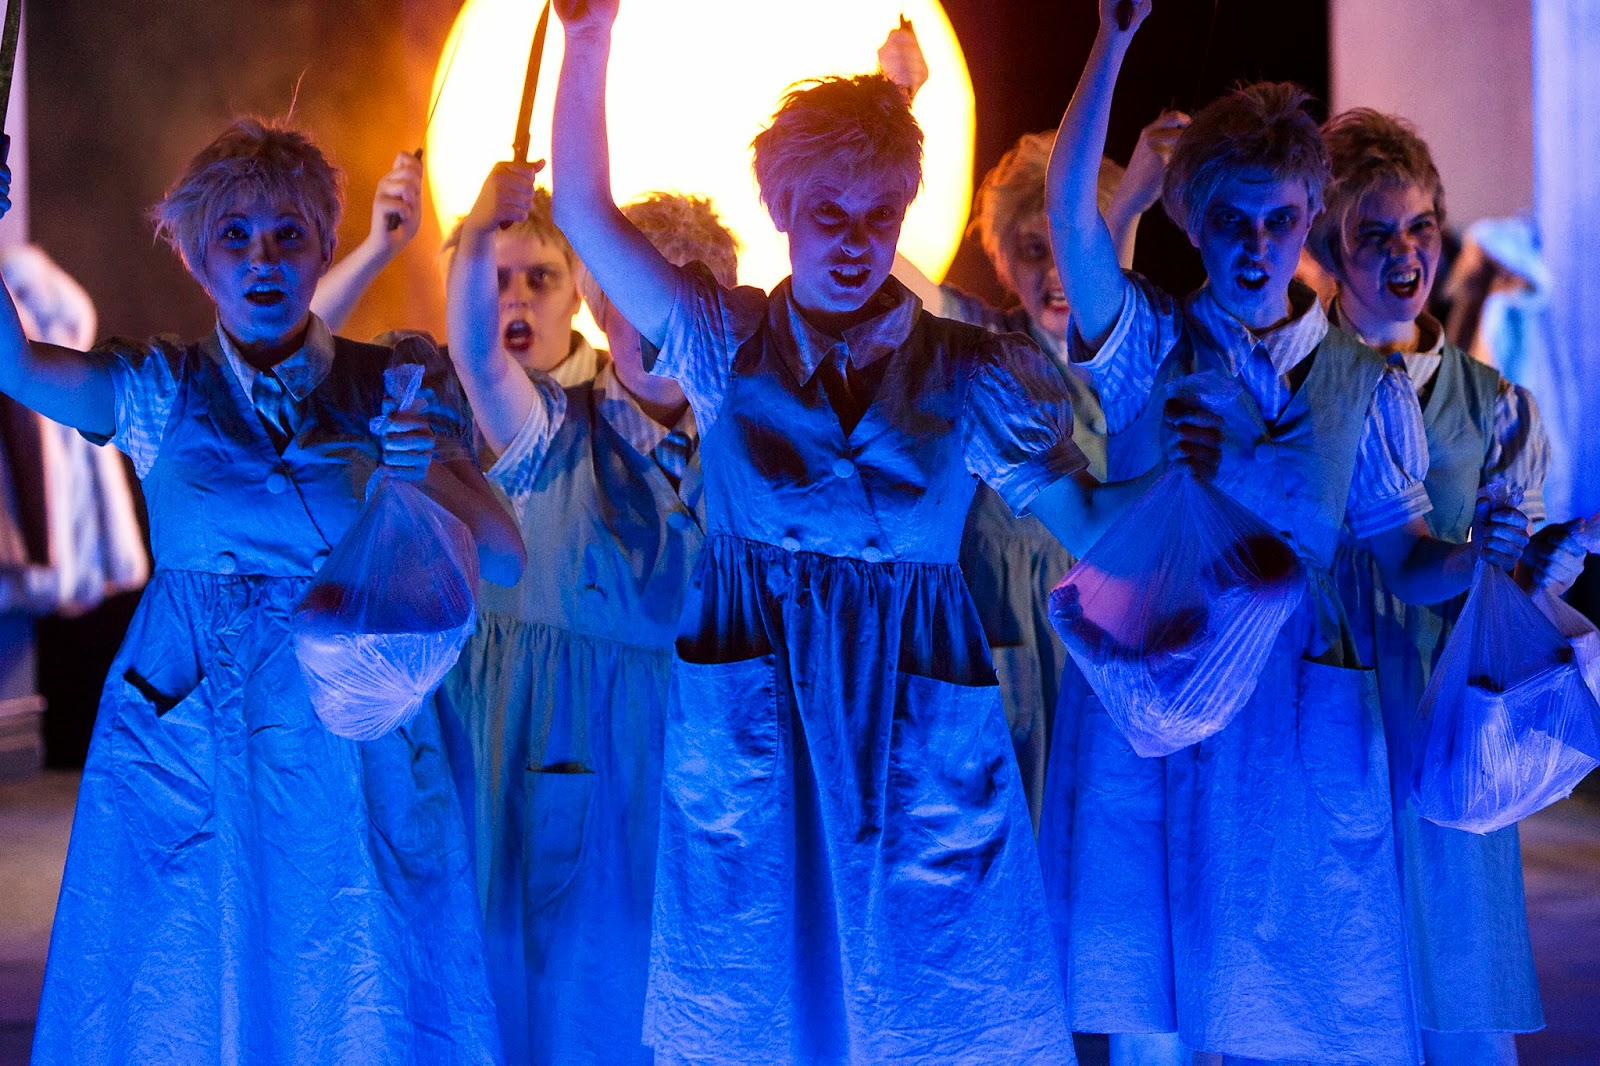 witches in macbeth their importance and The witches in macbeth are important because they provide macbeth's call to  action the witches' prophesies also affect lady macbeth, albeit.